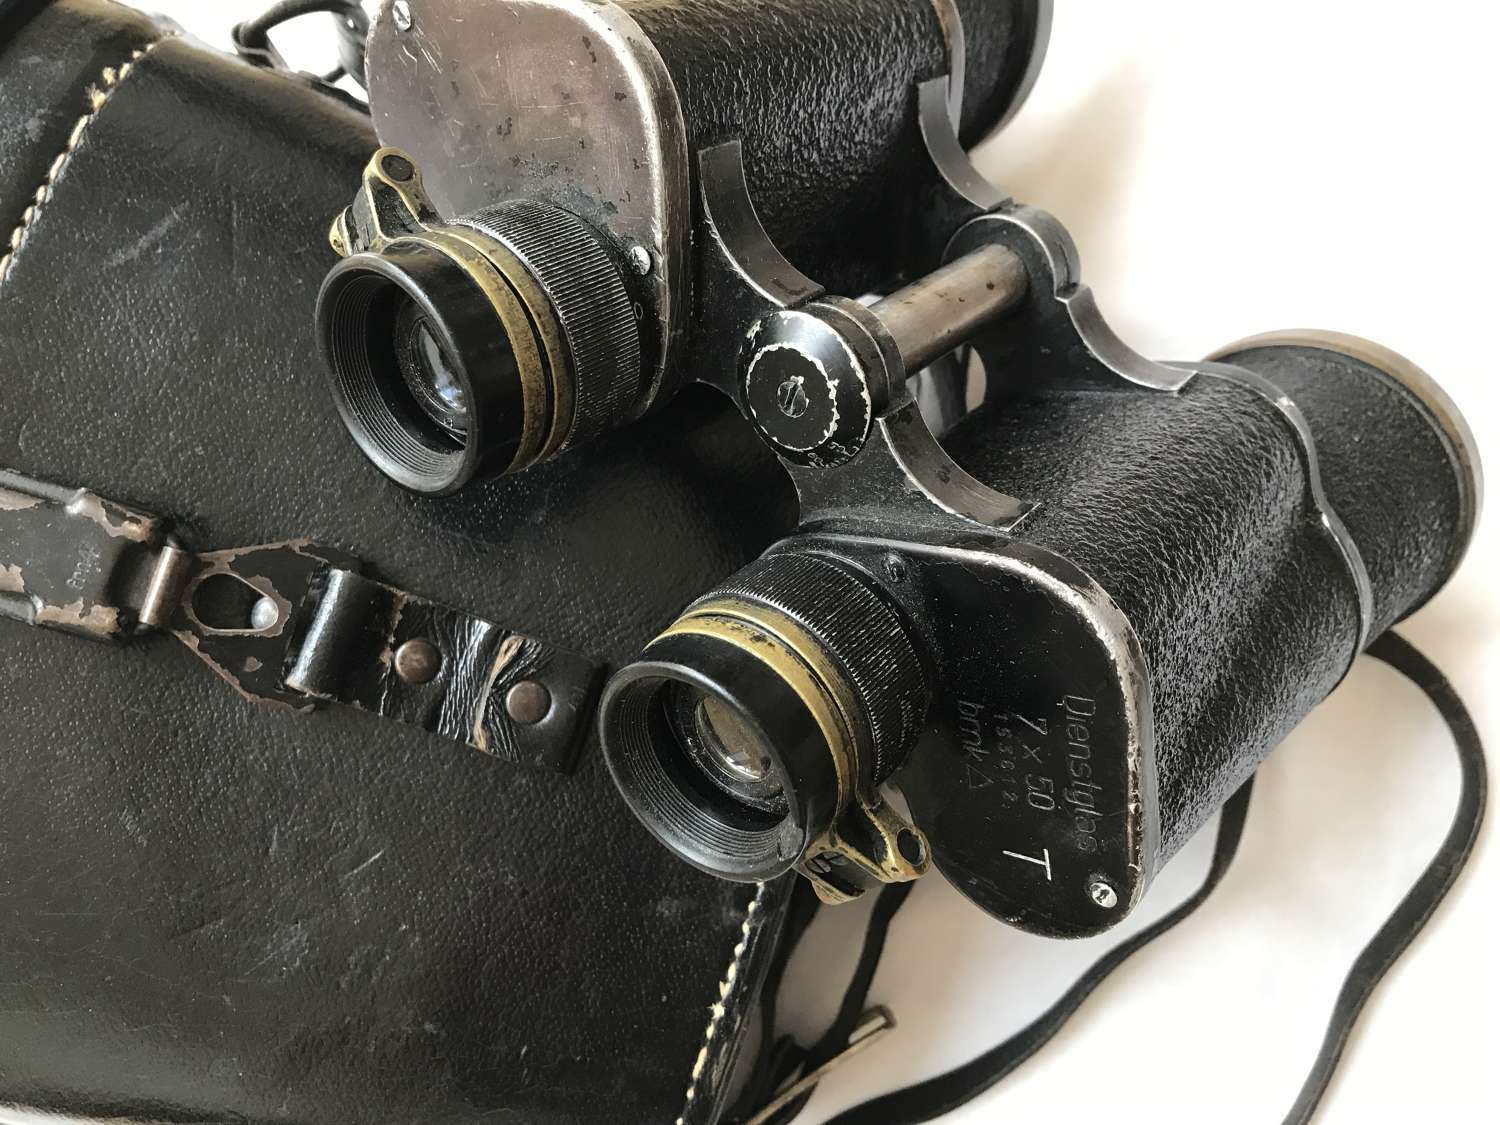 7x50 bmk Army binoculars with case dated 1944